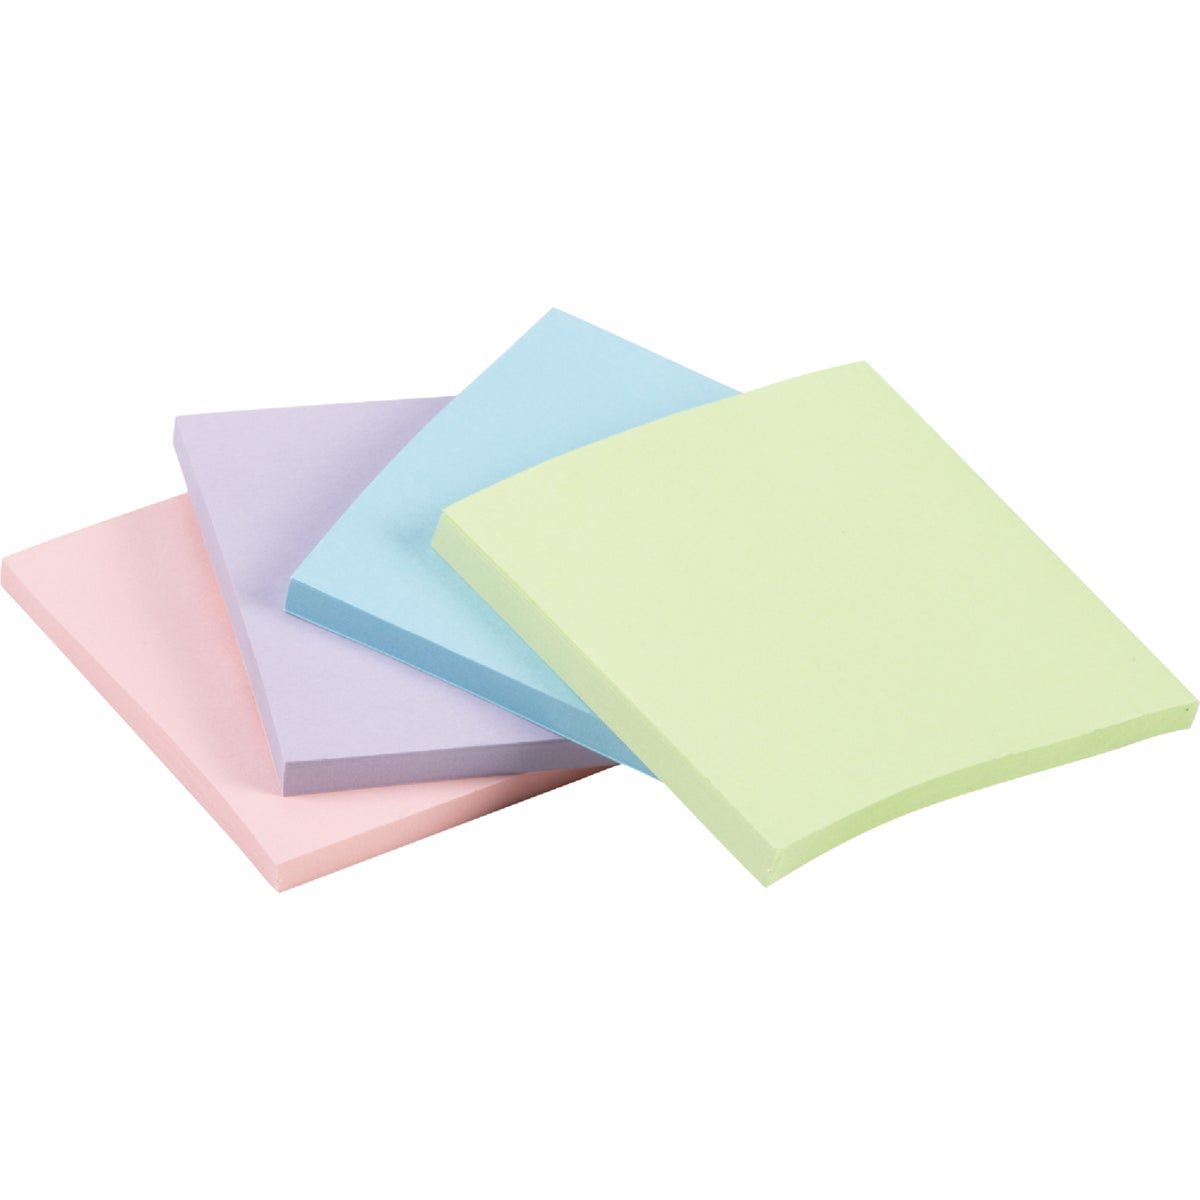 "4PK 2-7/8"" ASTD POST-IT - 5401A by 3m Co"